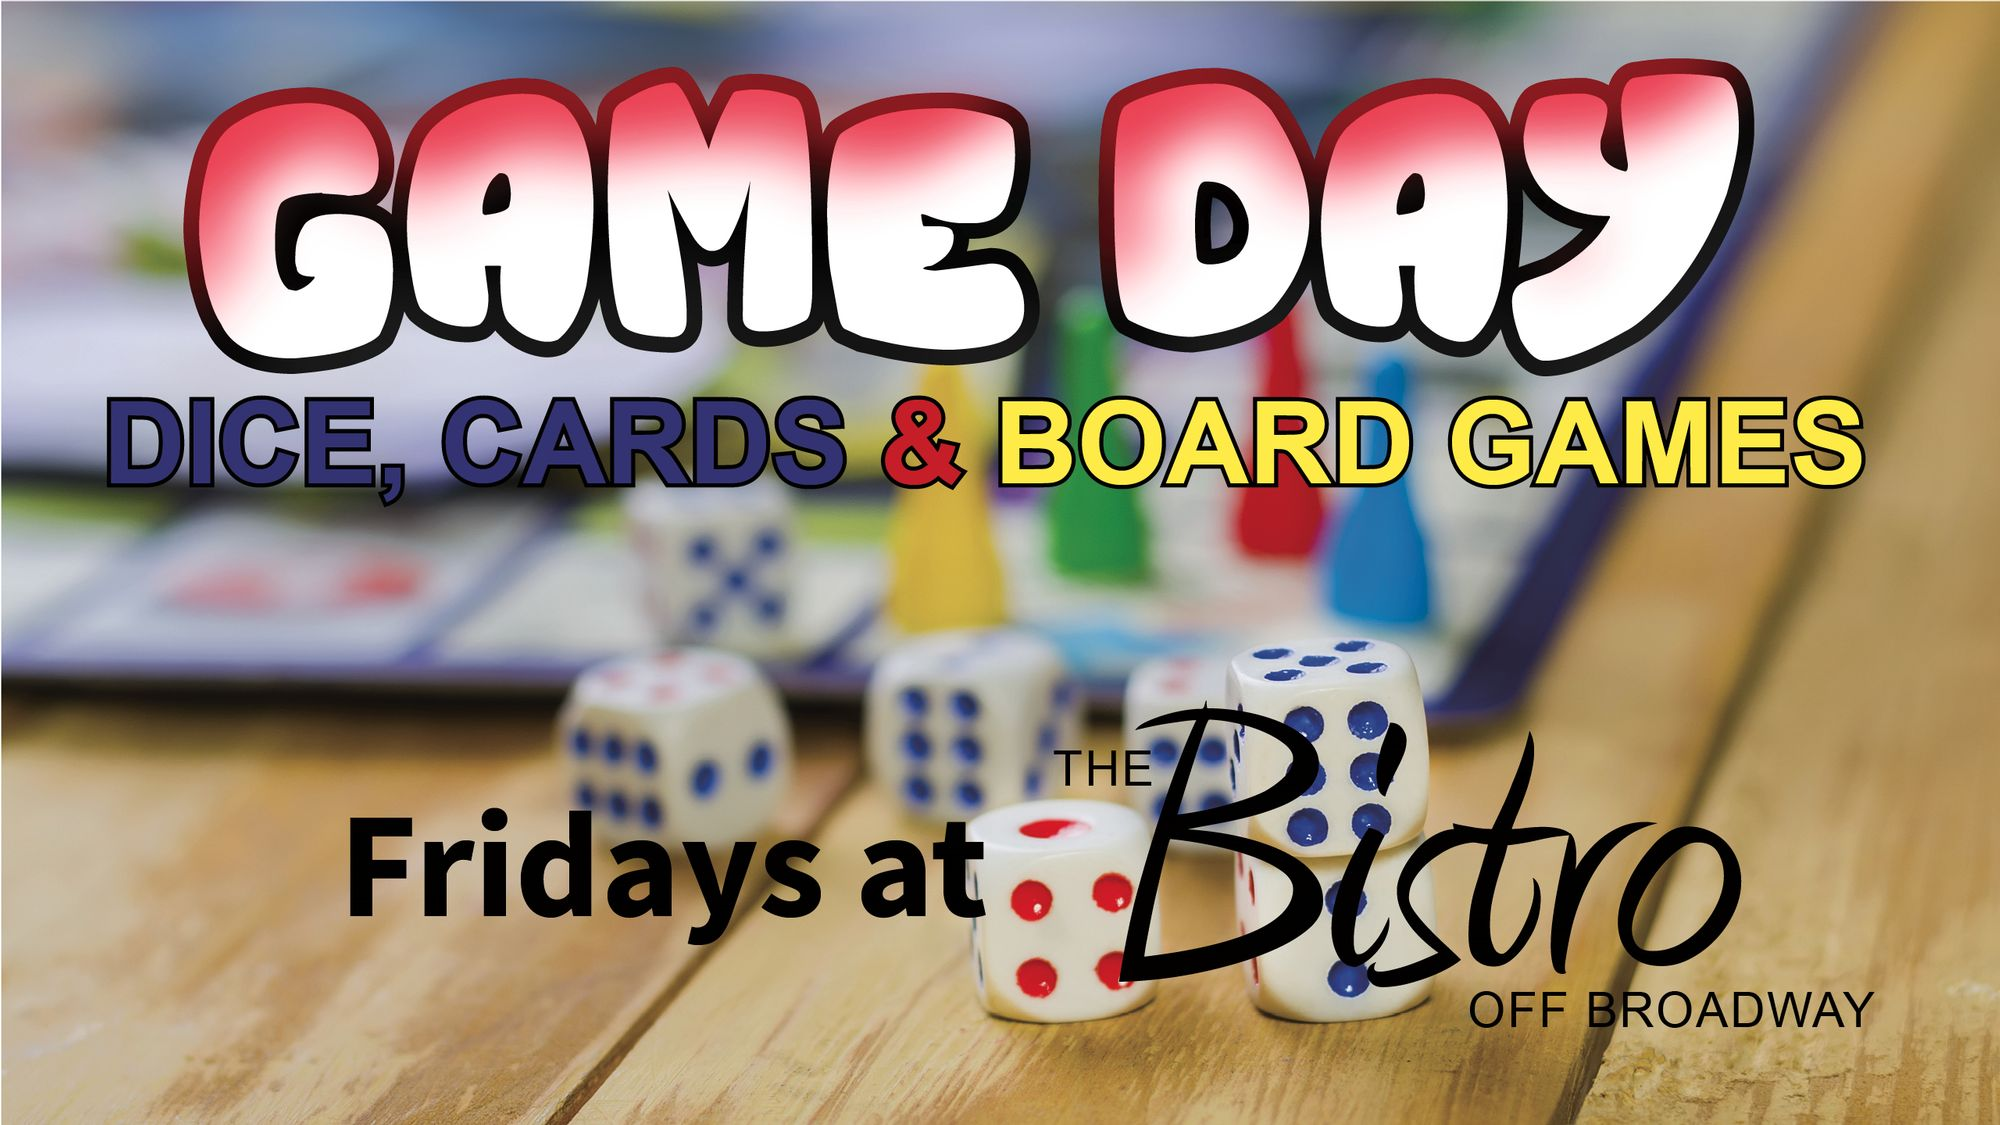 Game Day: Dice, Cards & Board Games. Sundays at The Bistro